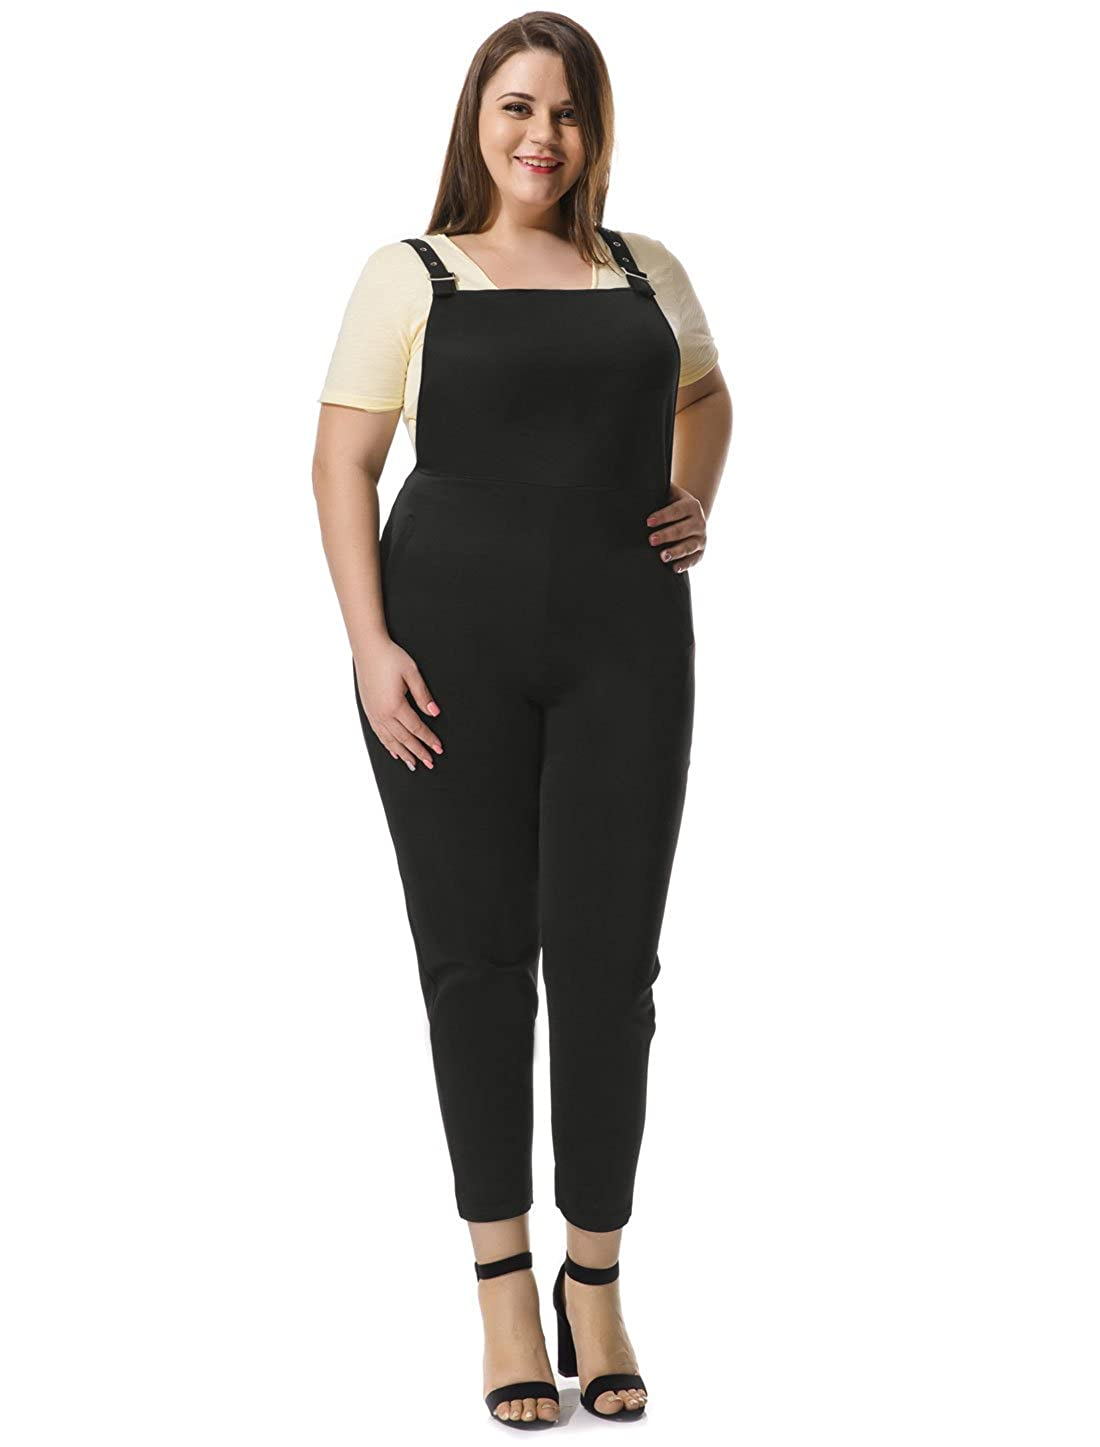 Agnes Orinda Women's Plus Size Overalls w Side Pockets 2X Black a15122300ux0139